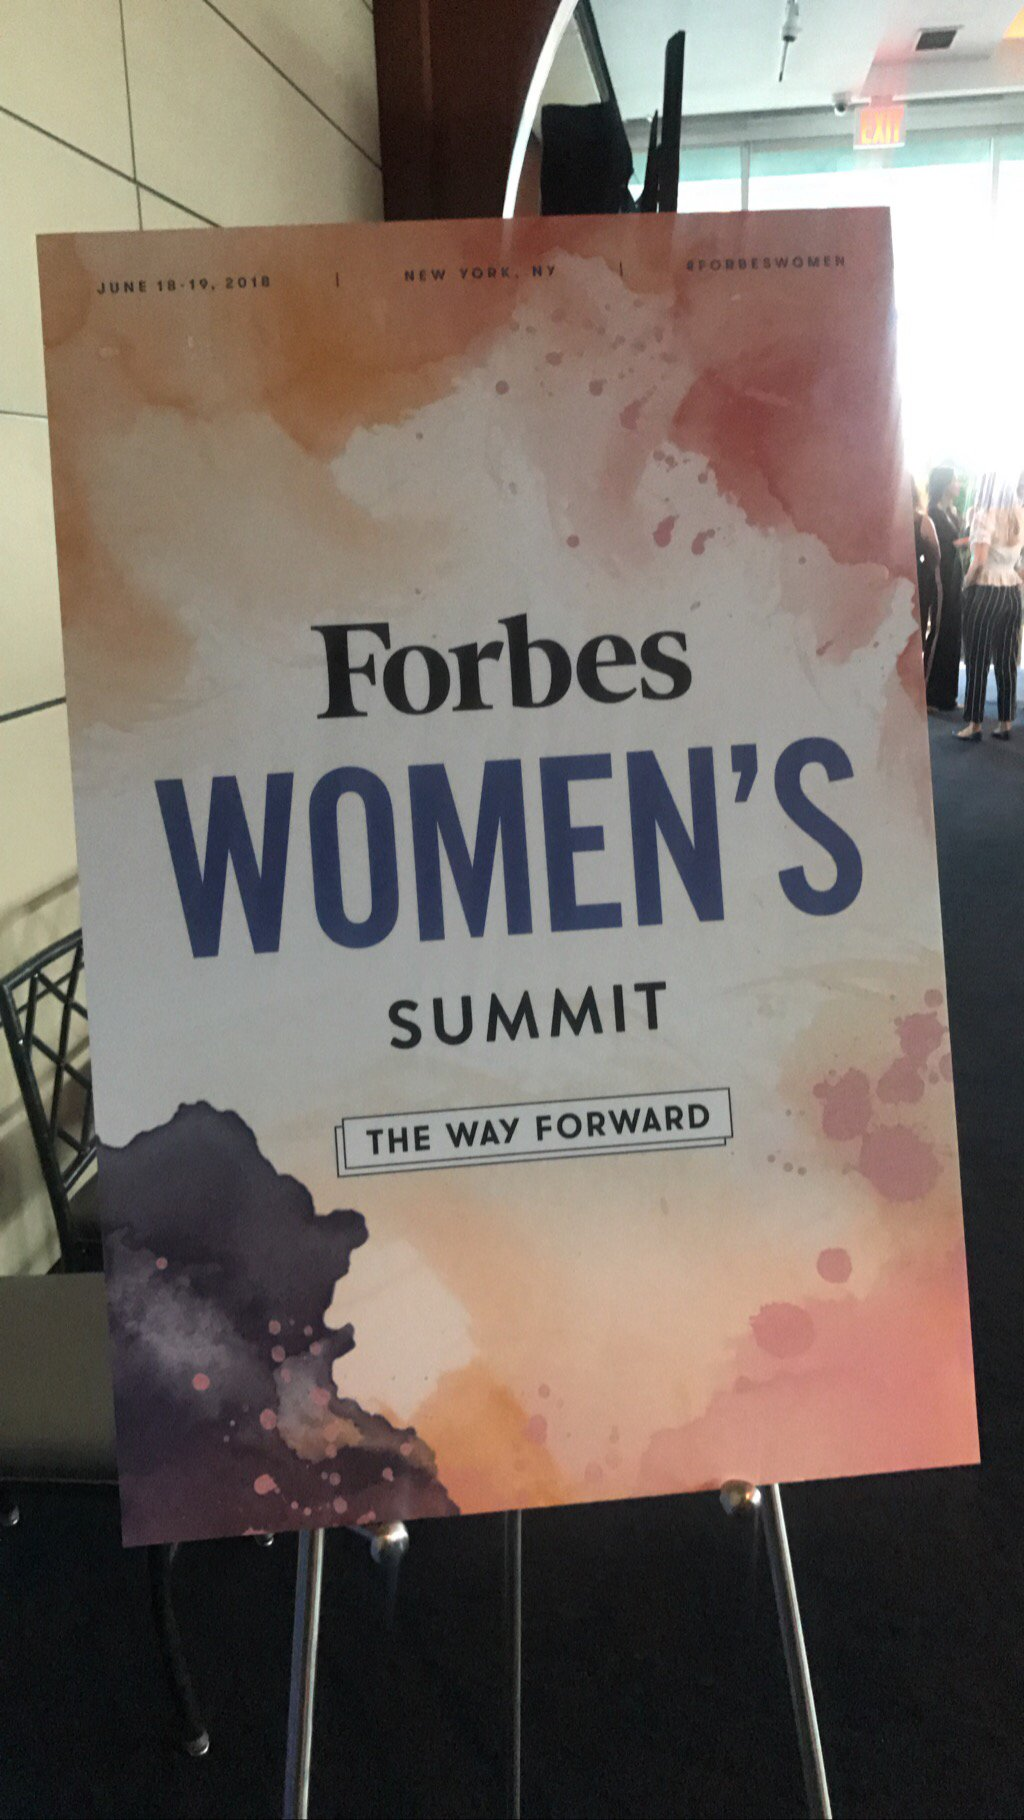 Getting ready to kickoff the 2018 Forbes Women's Summit! Follow along using #ForbesWomen https://t.co/J9HSjNrV8f